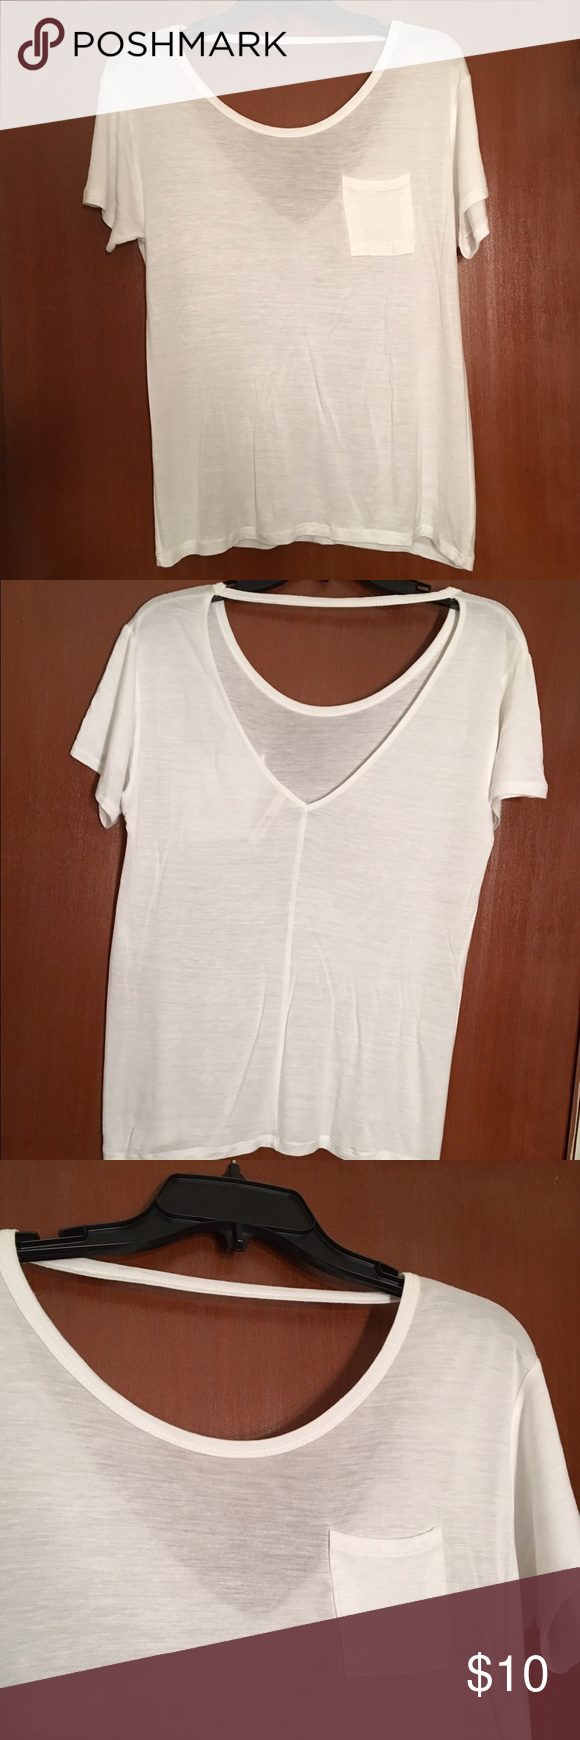 White T with deep V back Very versatile lightweight white t-shirt with scoop neck and deep v in back. Only worn once. Pair with your favorite strappy sports bra or bandeau, or dress it up under a jacket or sweater. Tops Tees - Short Sleeve